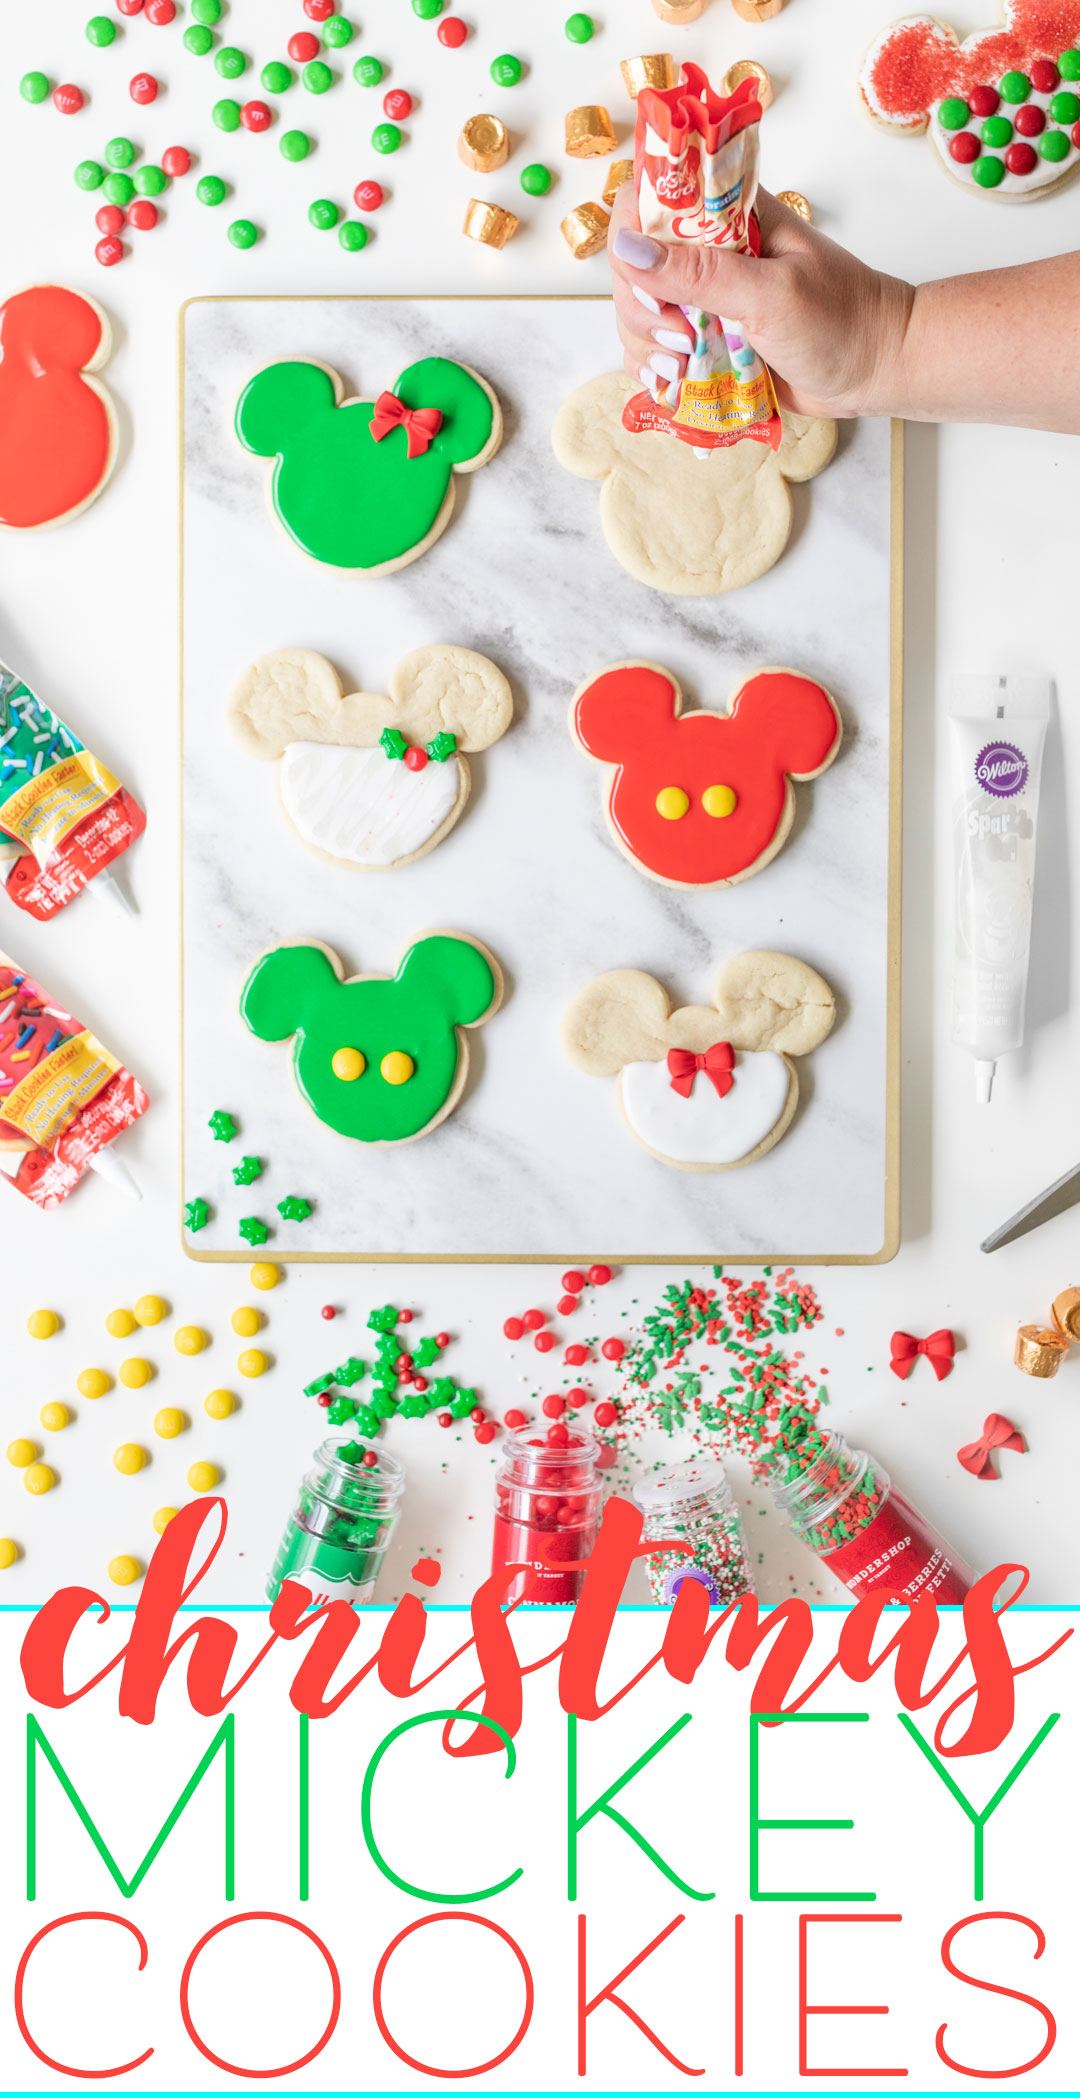 Mickey Christmas Cookies for an easy Disney inspired holiday DIY at home.